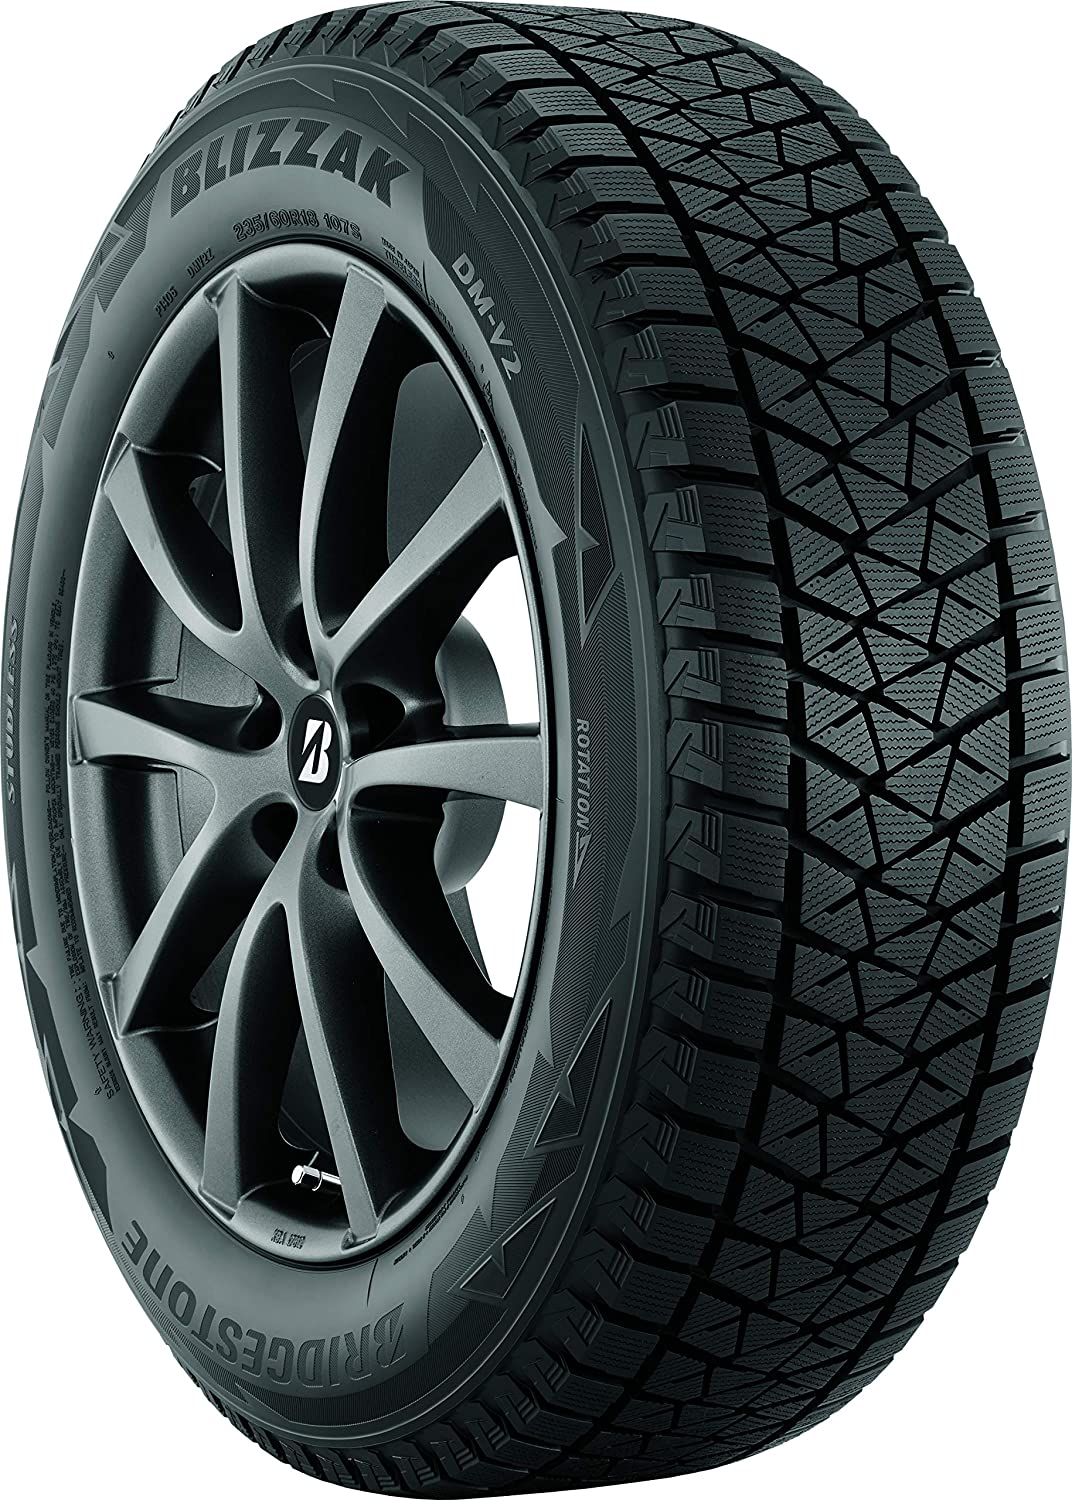 Bridgestone Blizzak DM-V2 Winter SUV Tire